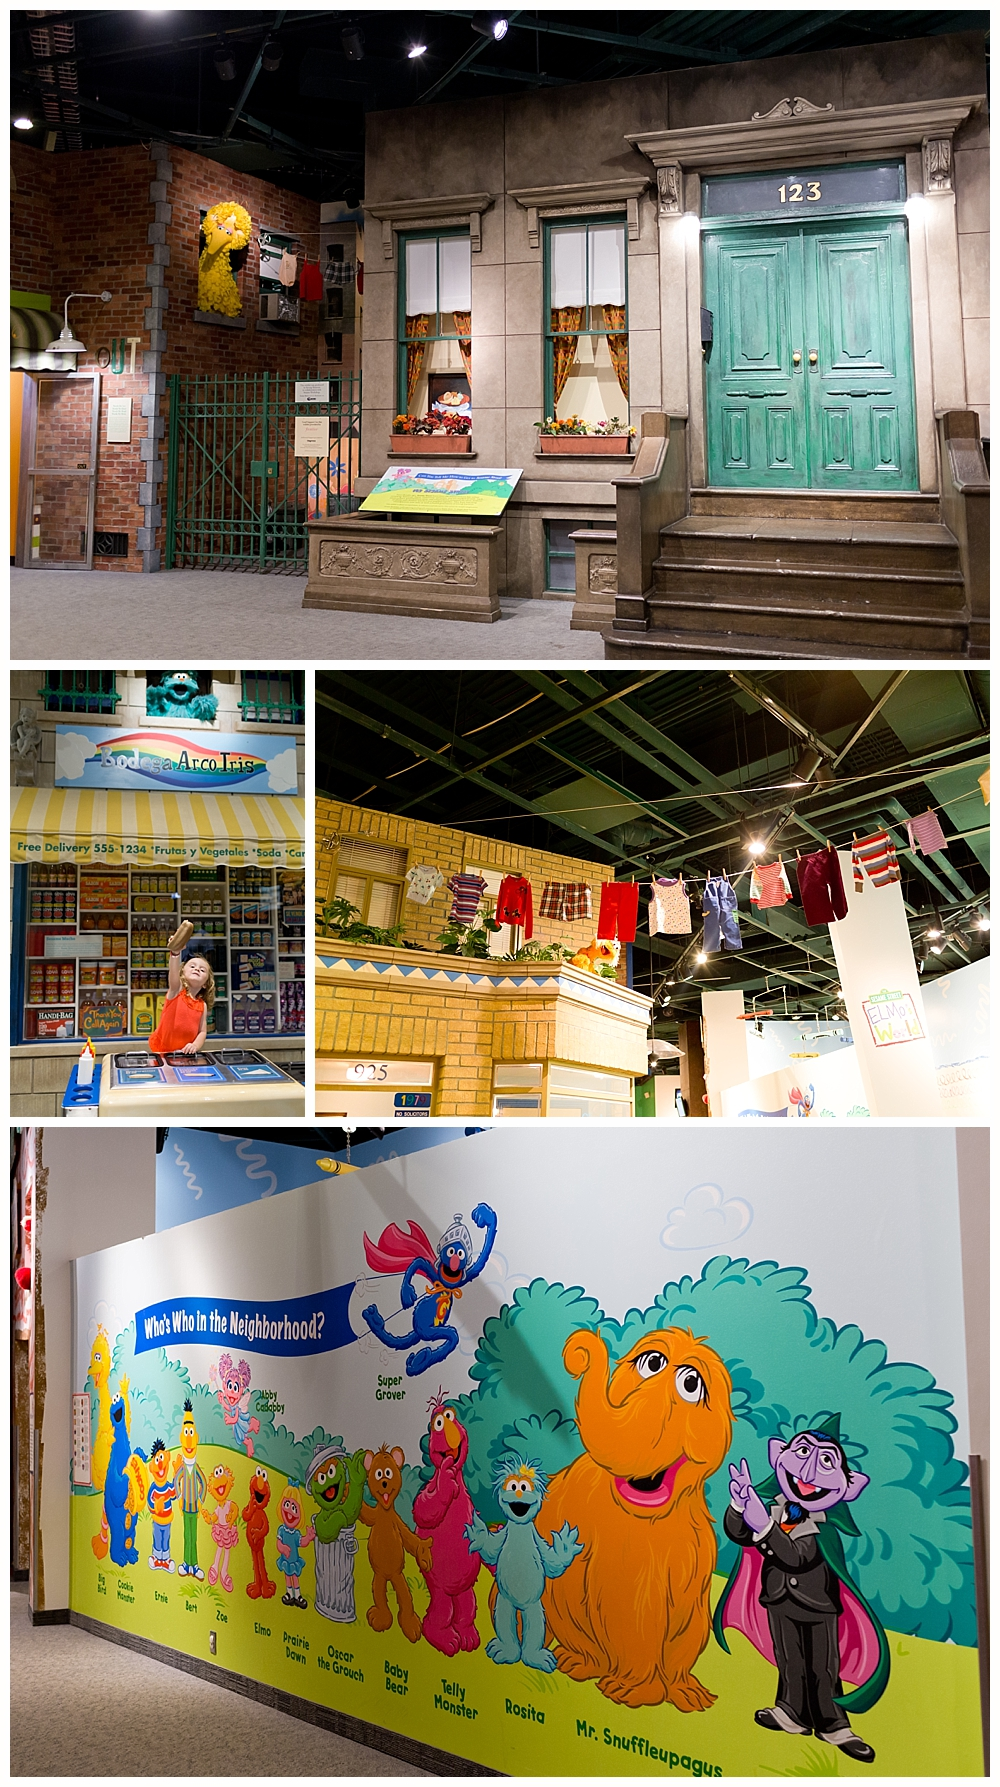 Sesame Street Exhibit at Strong National Museum of Play